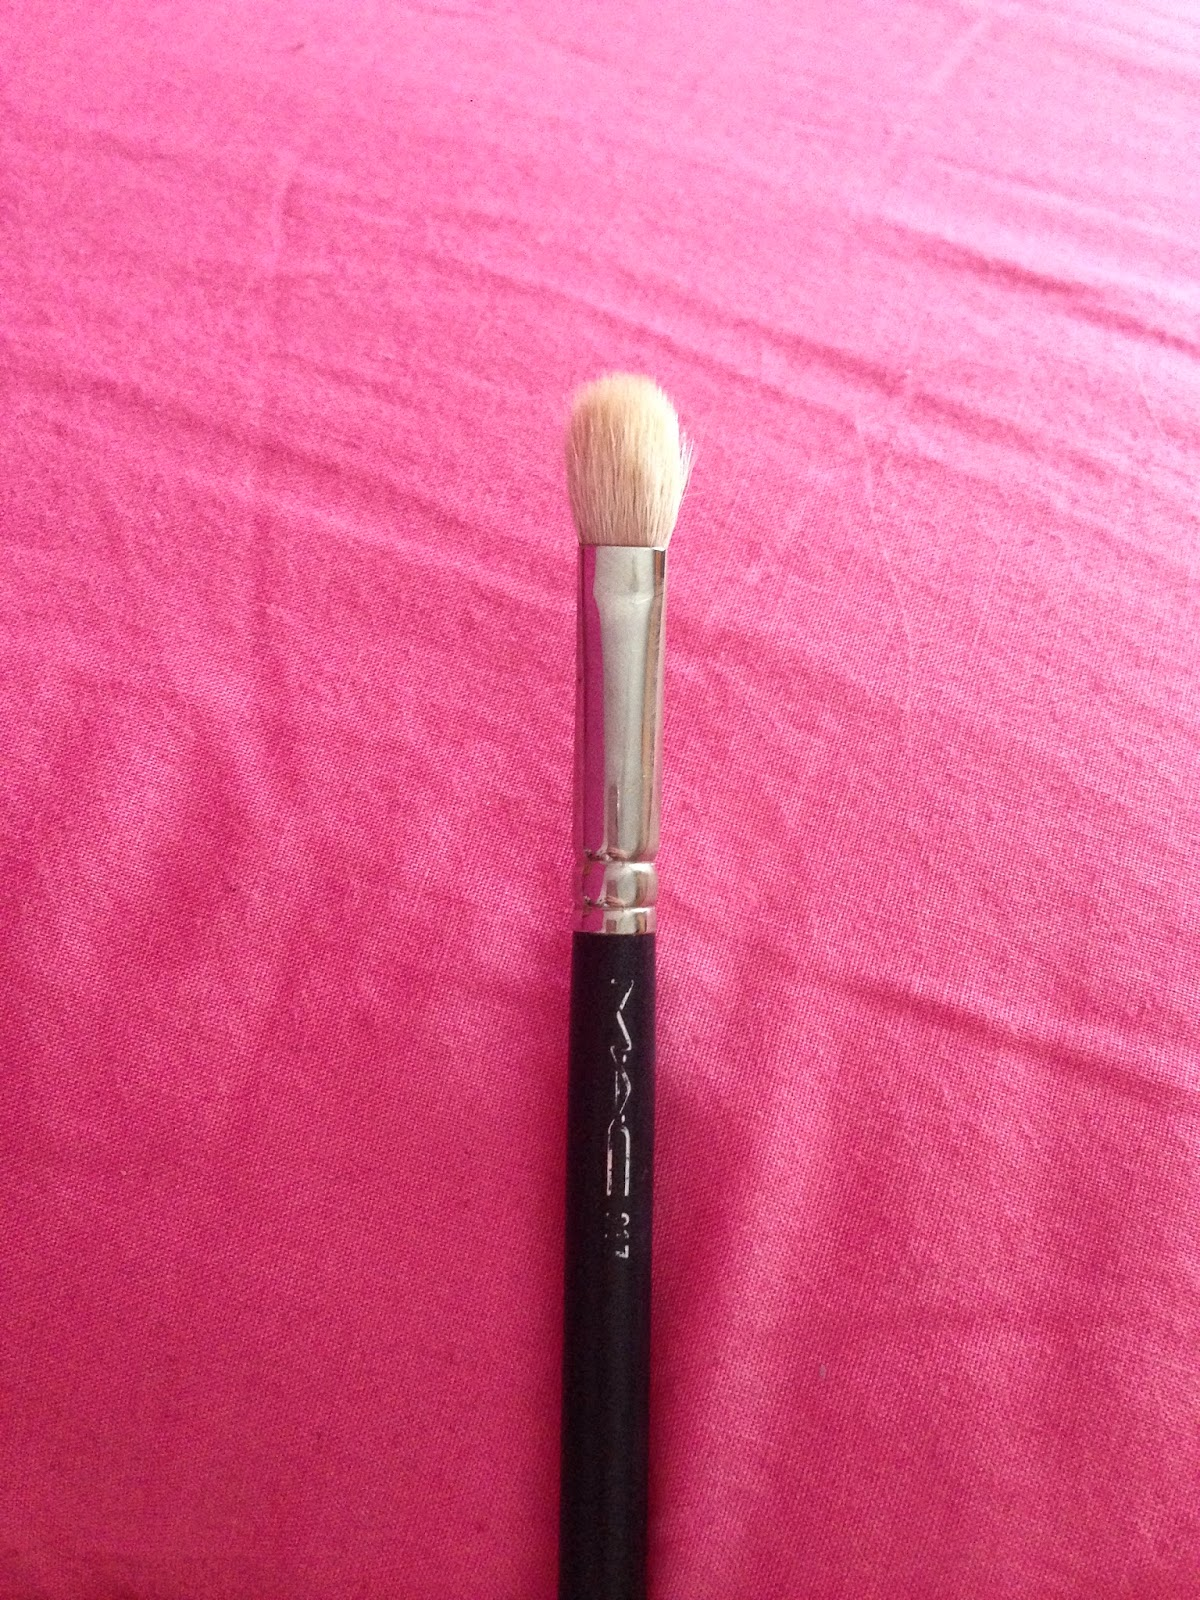 Lashes, Lipstick and Lifestyle : MAC 217 brush and Crown brush dupe